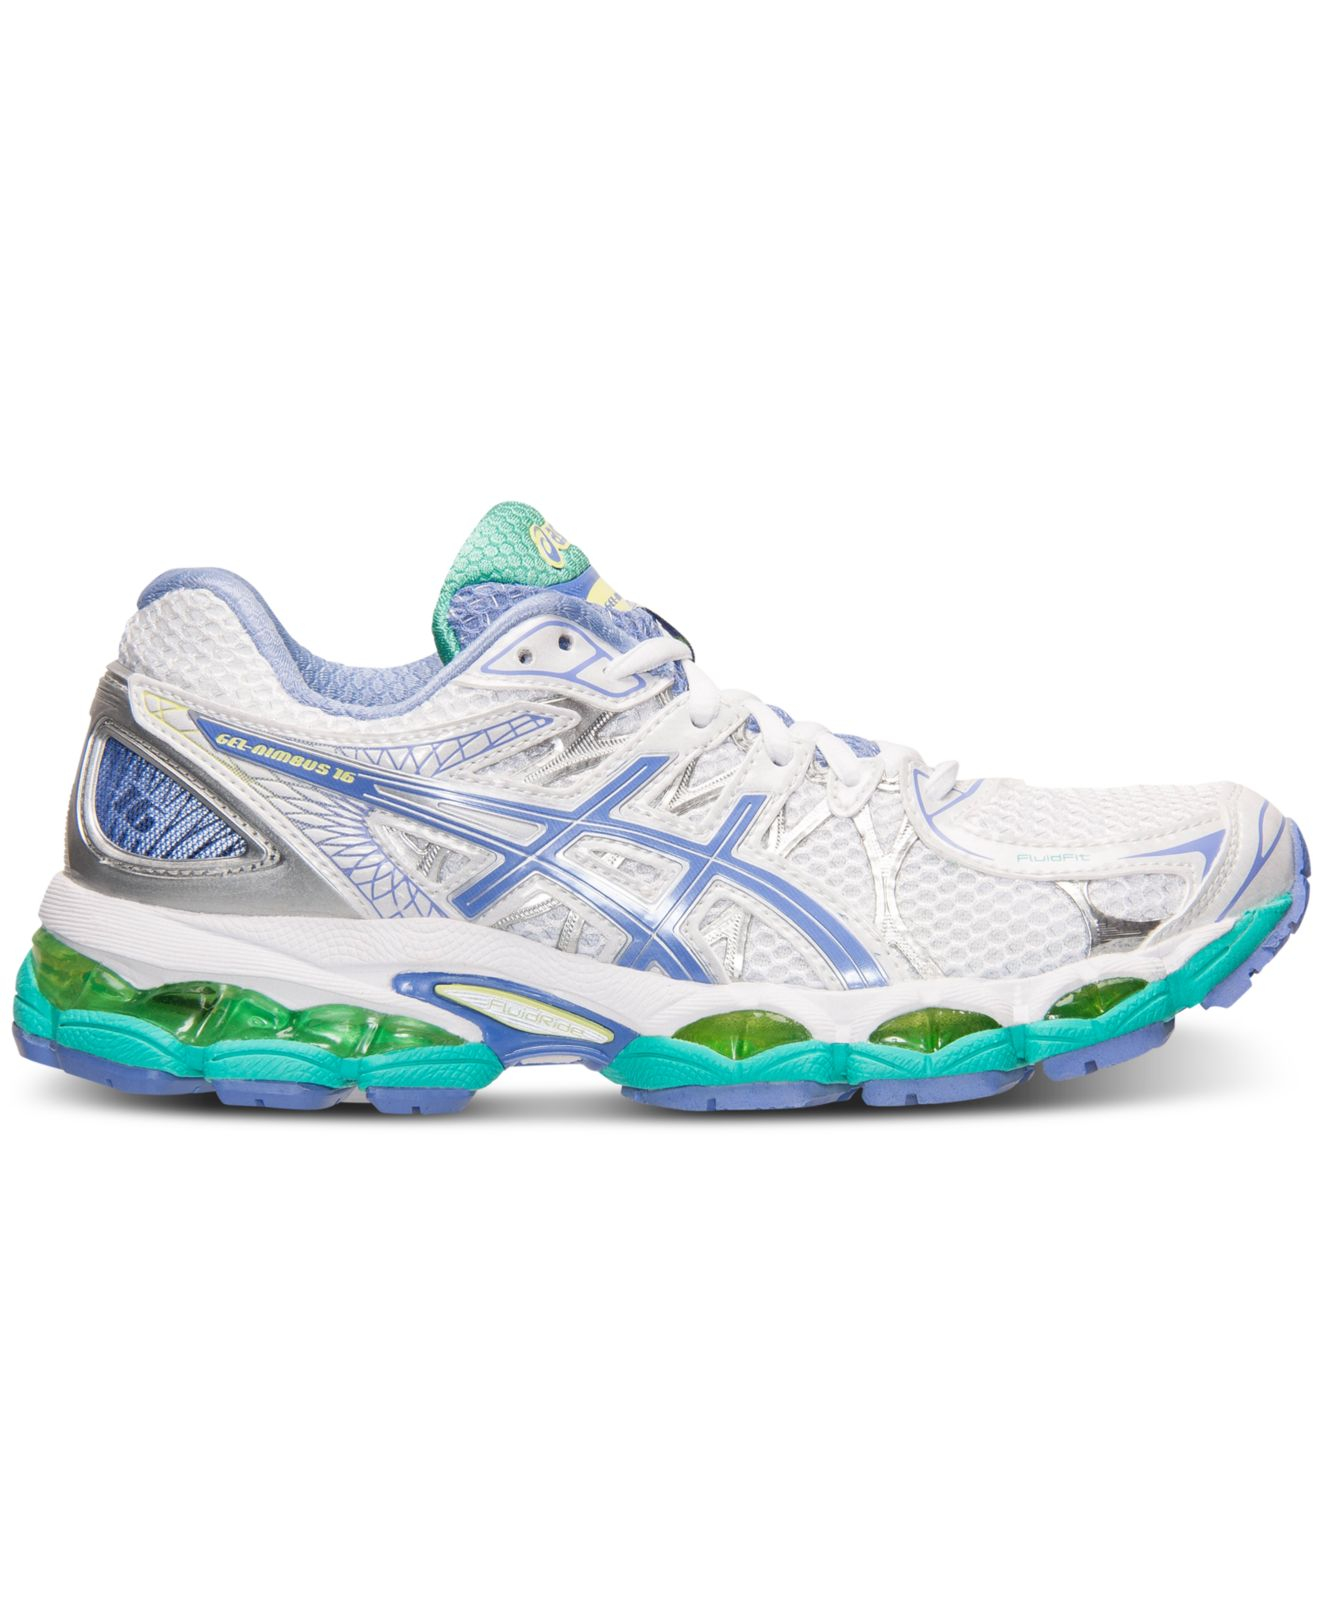 Top Of The Line Asics Running Shoes